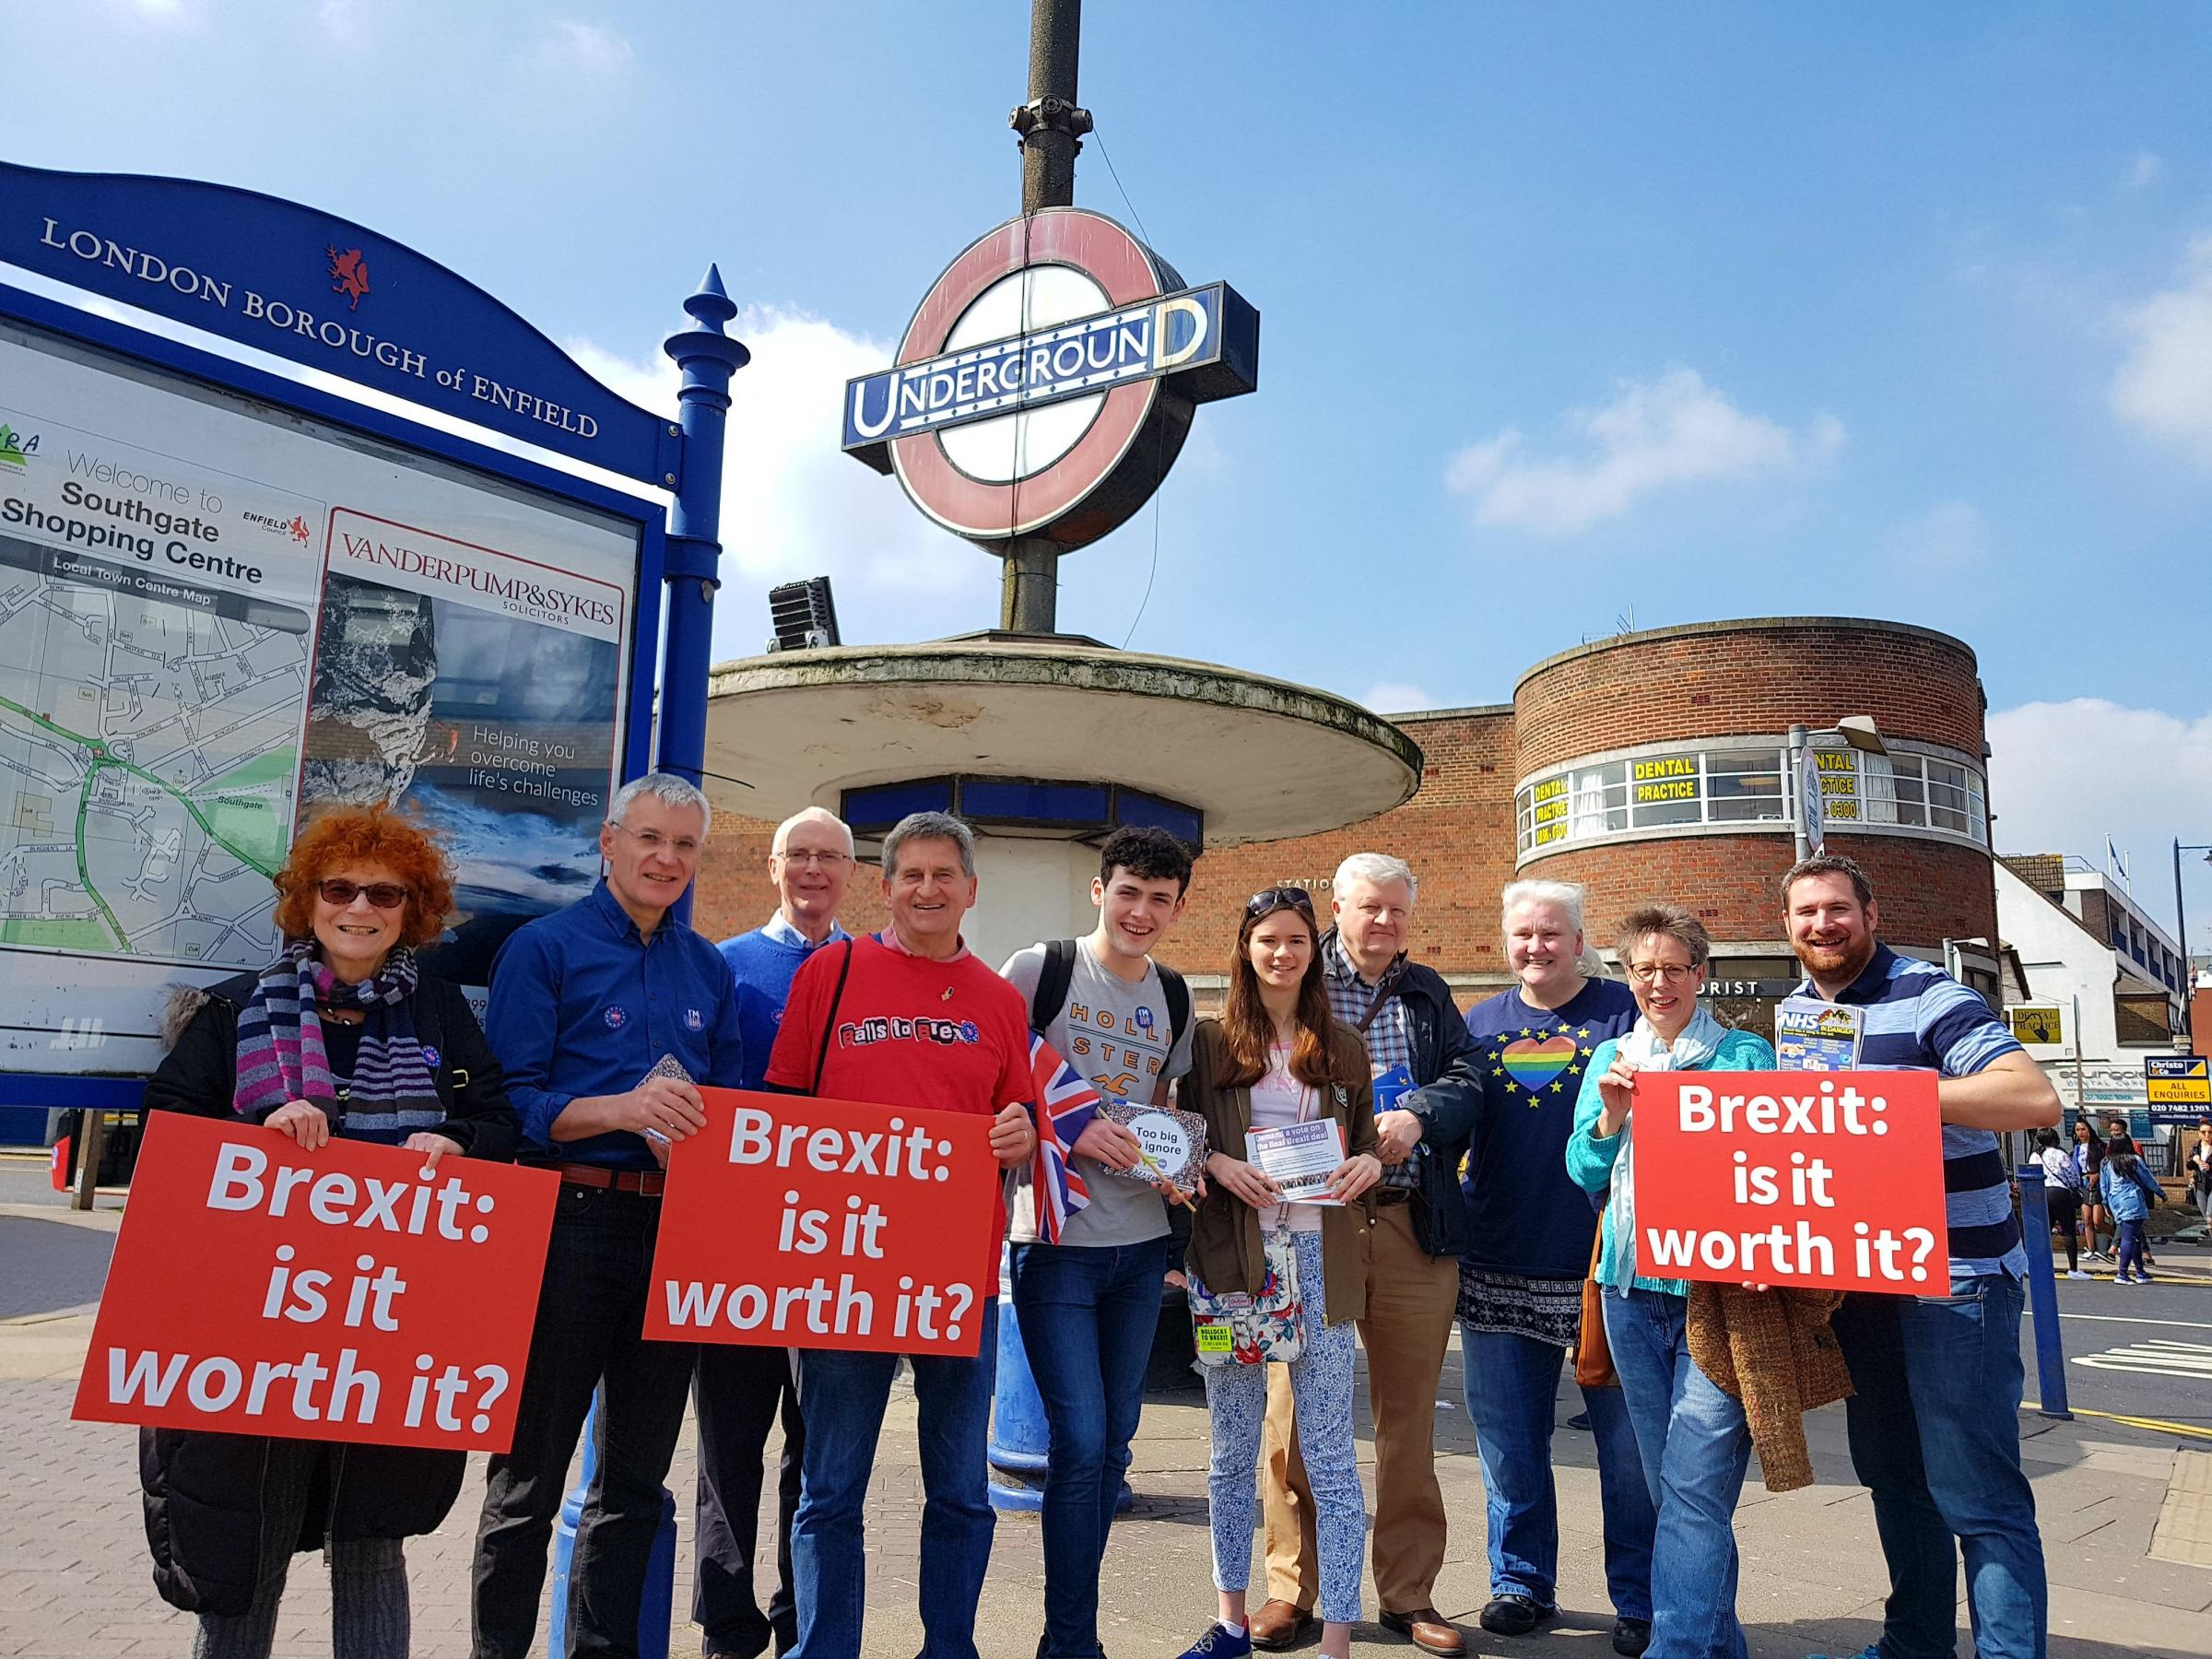 Enfield for Europe campaigners on the streets of Southgate